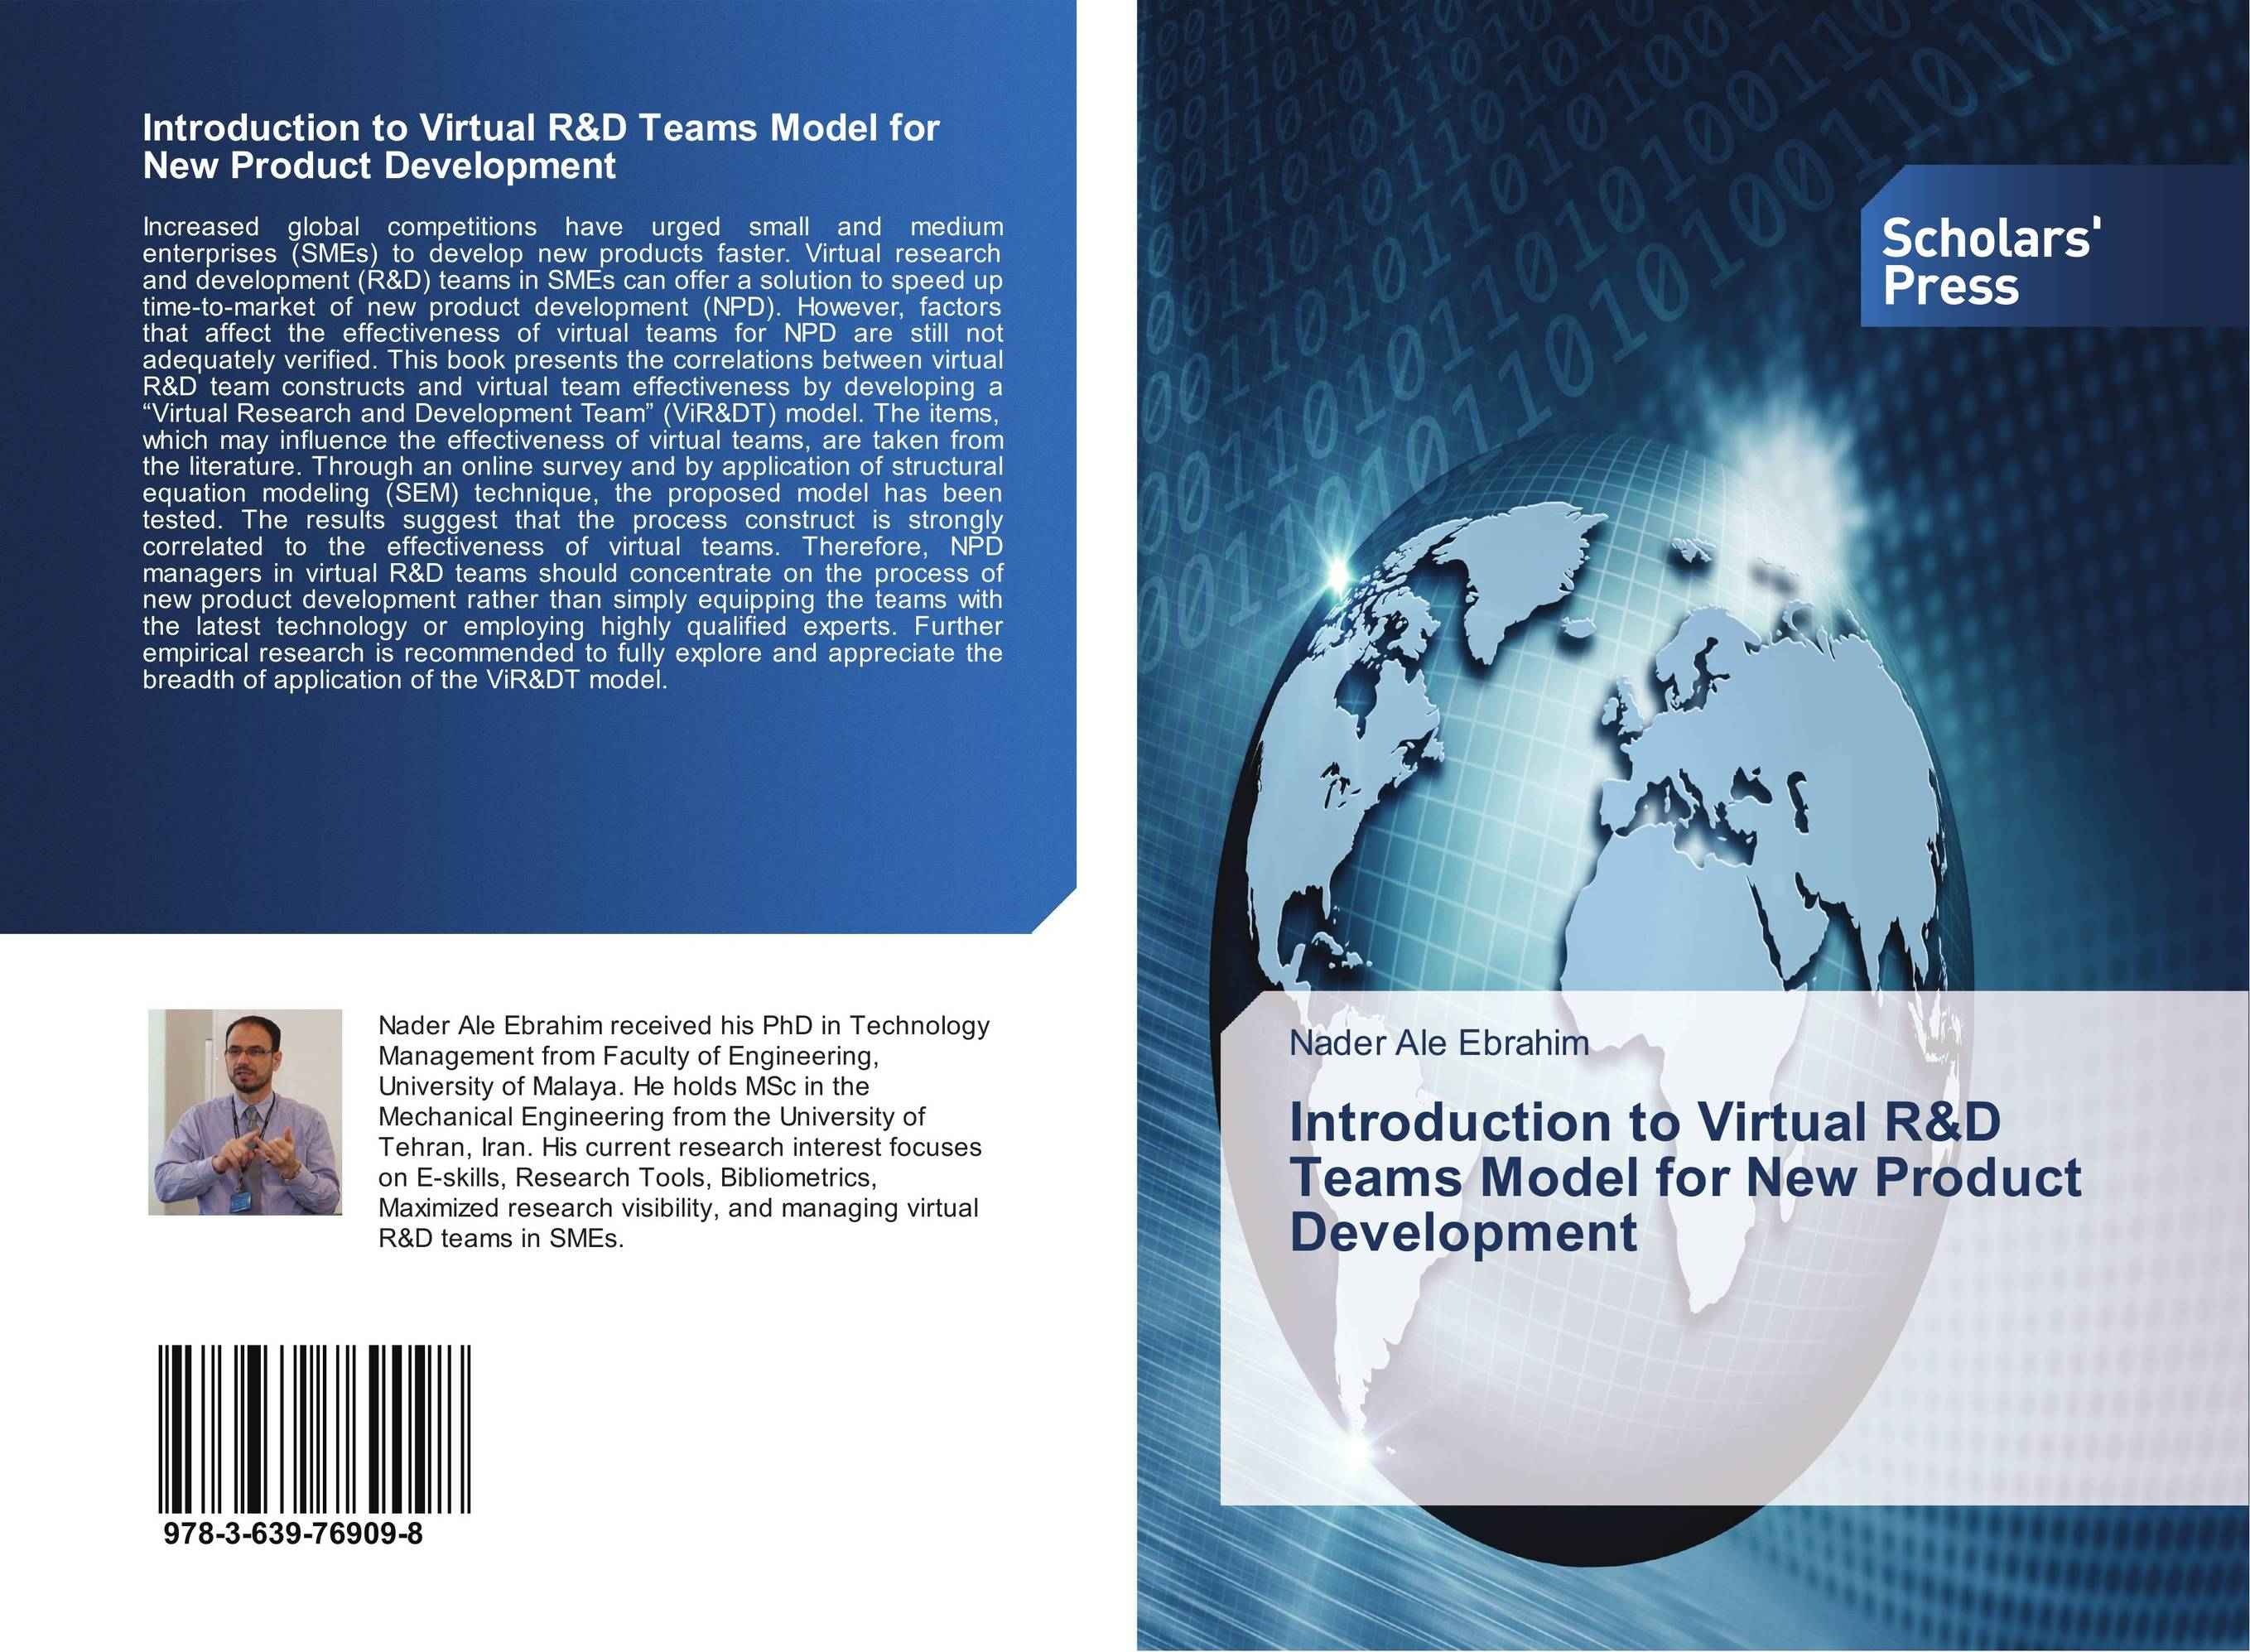 Introduction to Virtual R&D Teams Model for New Product Development team effectiveness